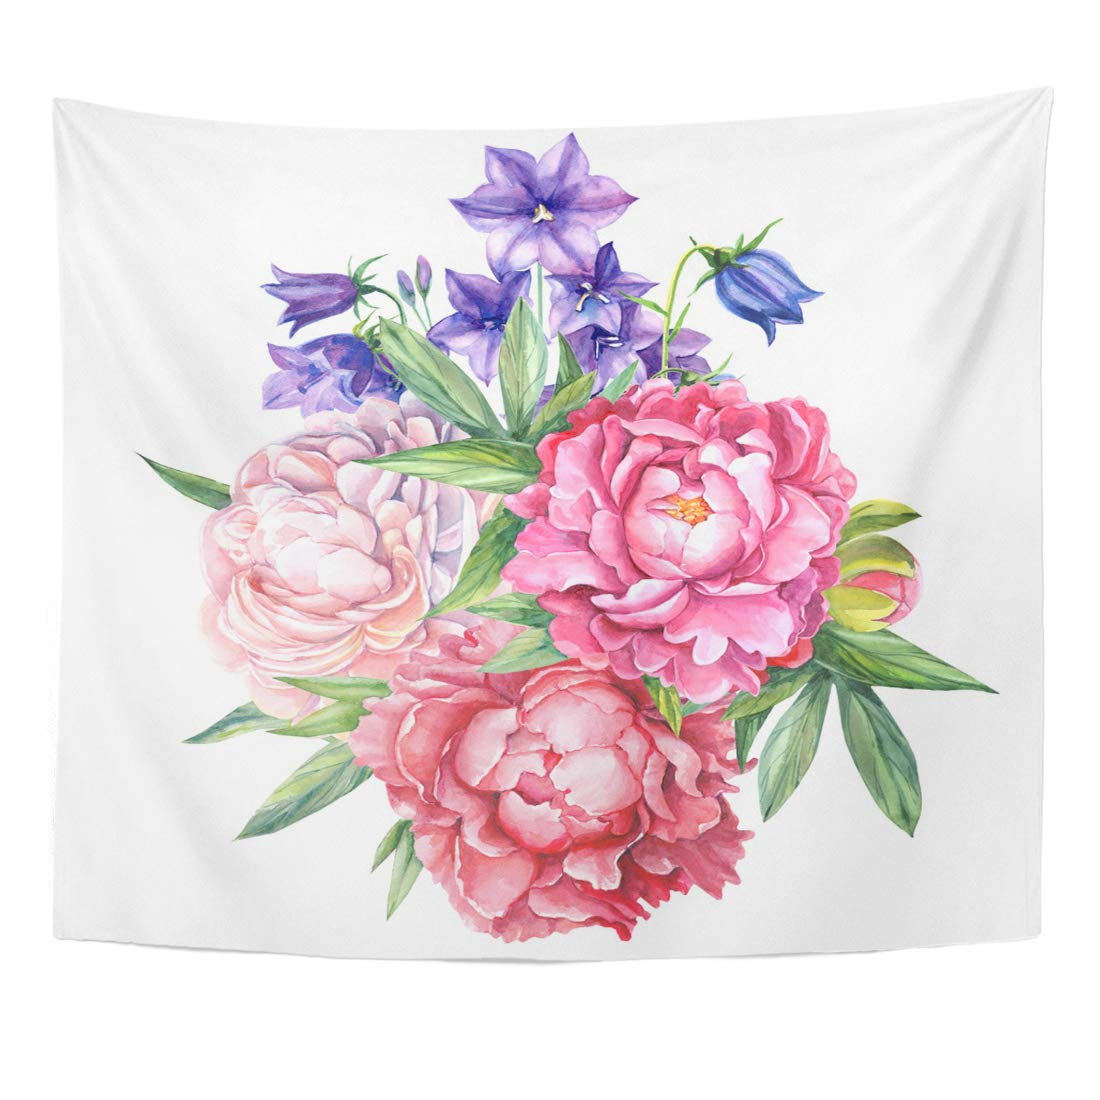 Refred Pink Birthday Colorful Vintage Flowers Bouquet Bells Peony Watercolor Green Beautiful Purple Blossom Wall Art Hanging Tapestry Home Decor For Living Room Bedroom Dorm 60x80 Inch Walmart Com Walmart Com